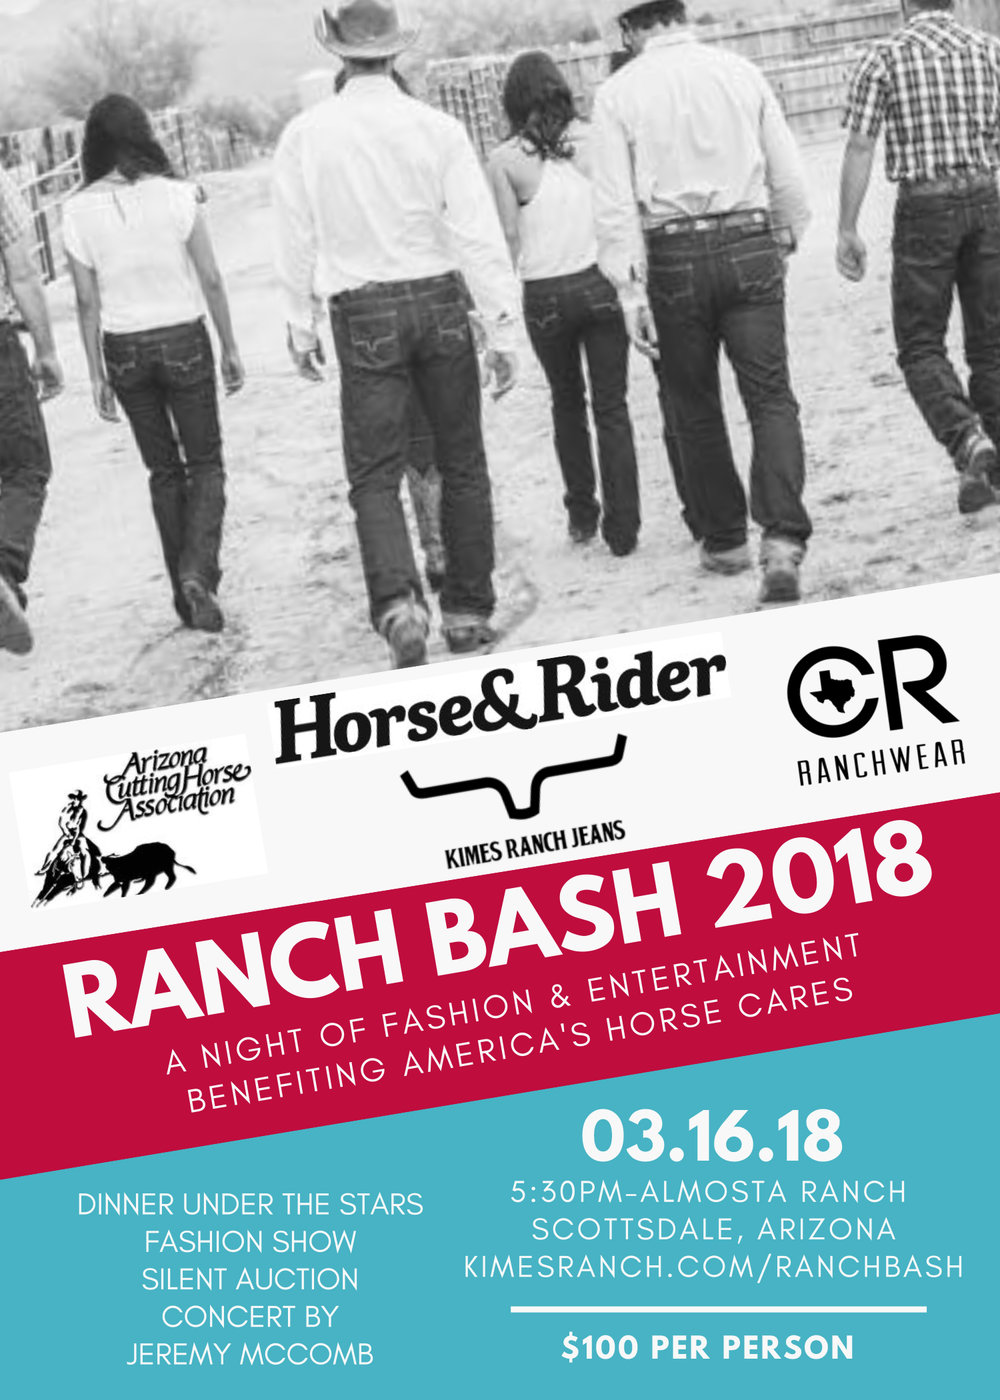 RANCH BASH Simple FLYER.jpg